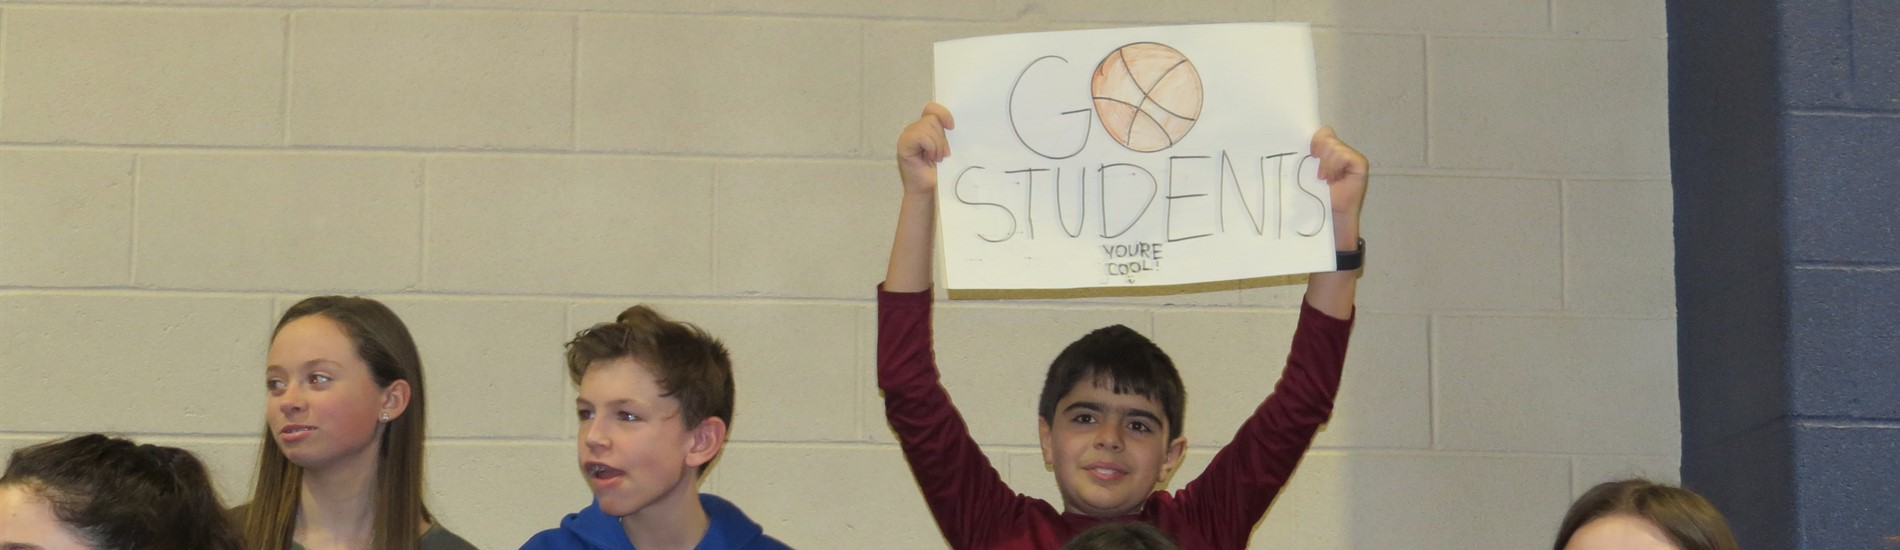 student cheering on the team with a sign